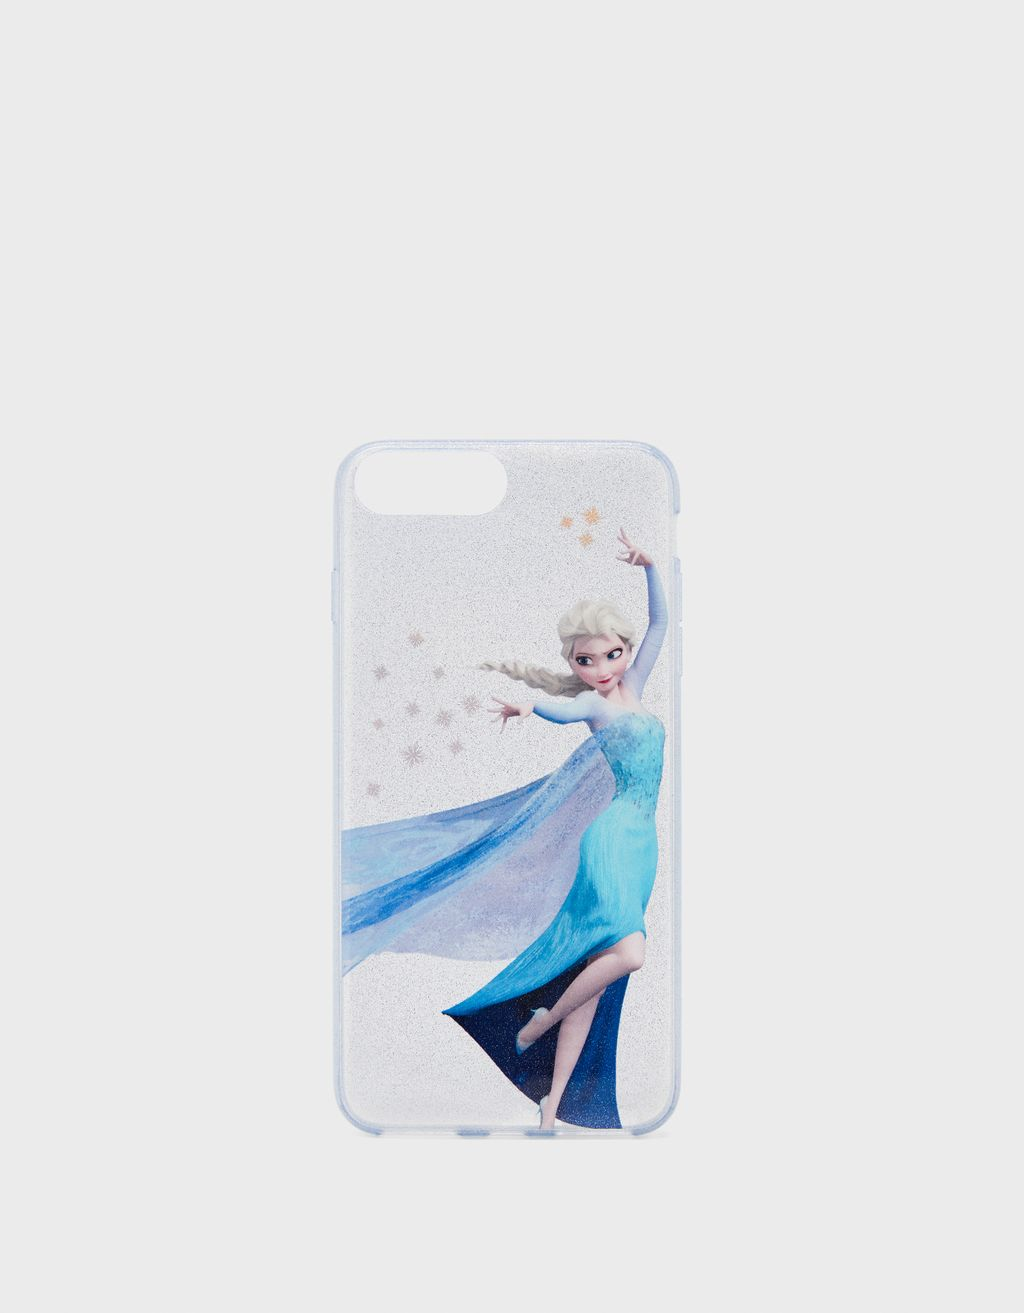 Frost-cover til iPhone 6 Plus / 7 Plus / 8 Plus